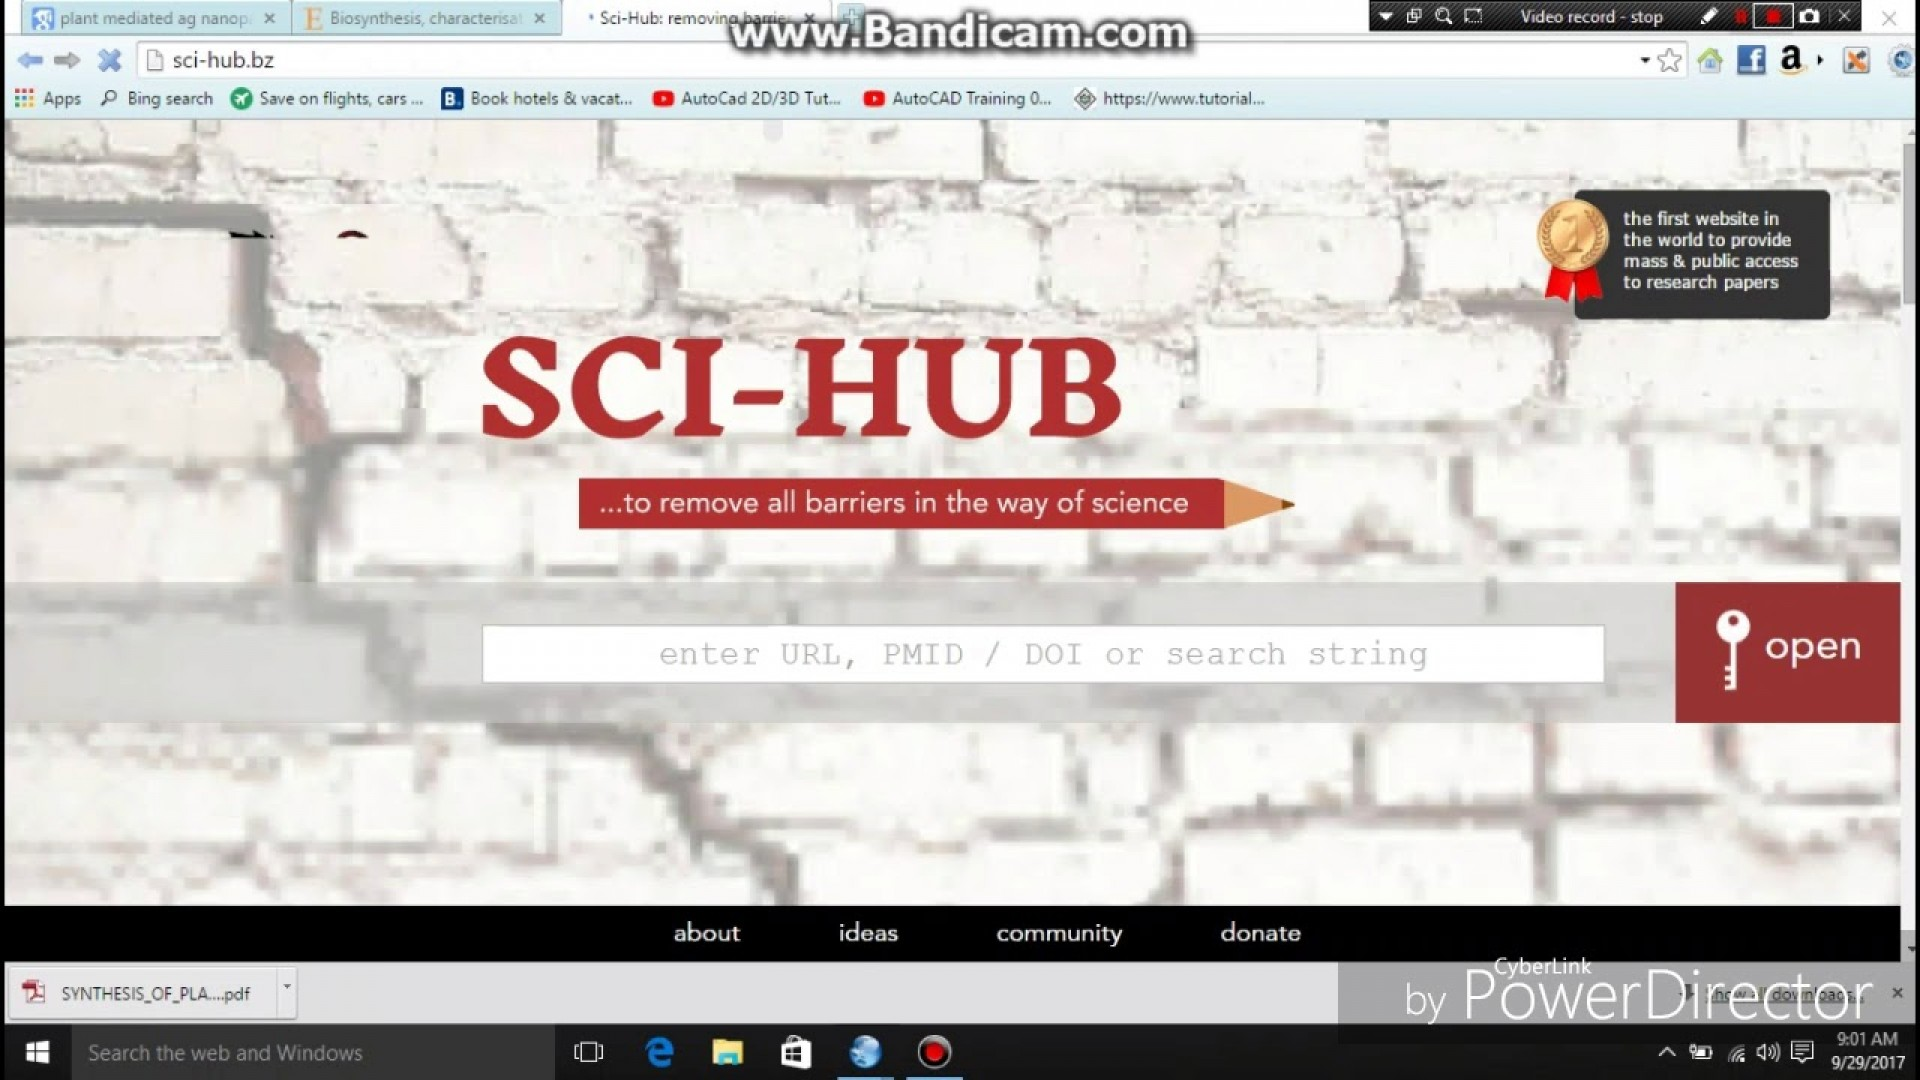 003 Research Paper Maxresdefault Best Site For Downloading Breathtaking Papers To Download Free Website 1920